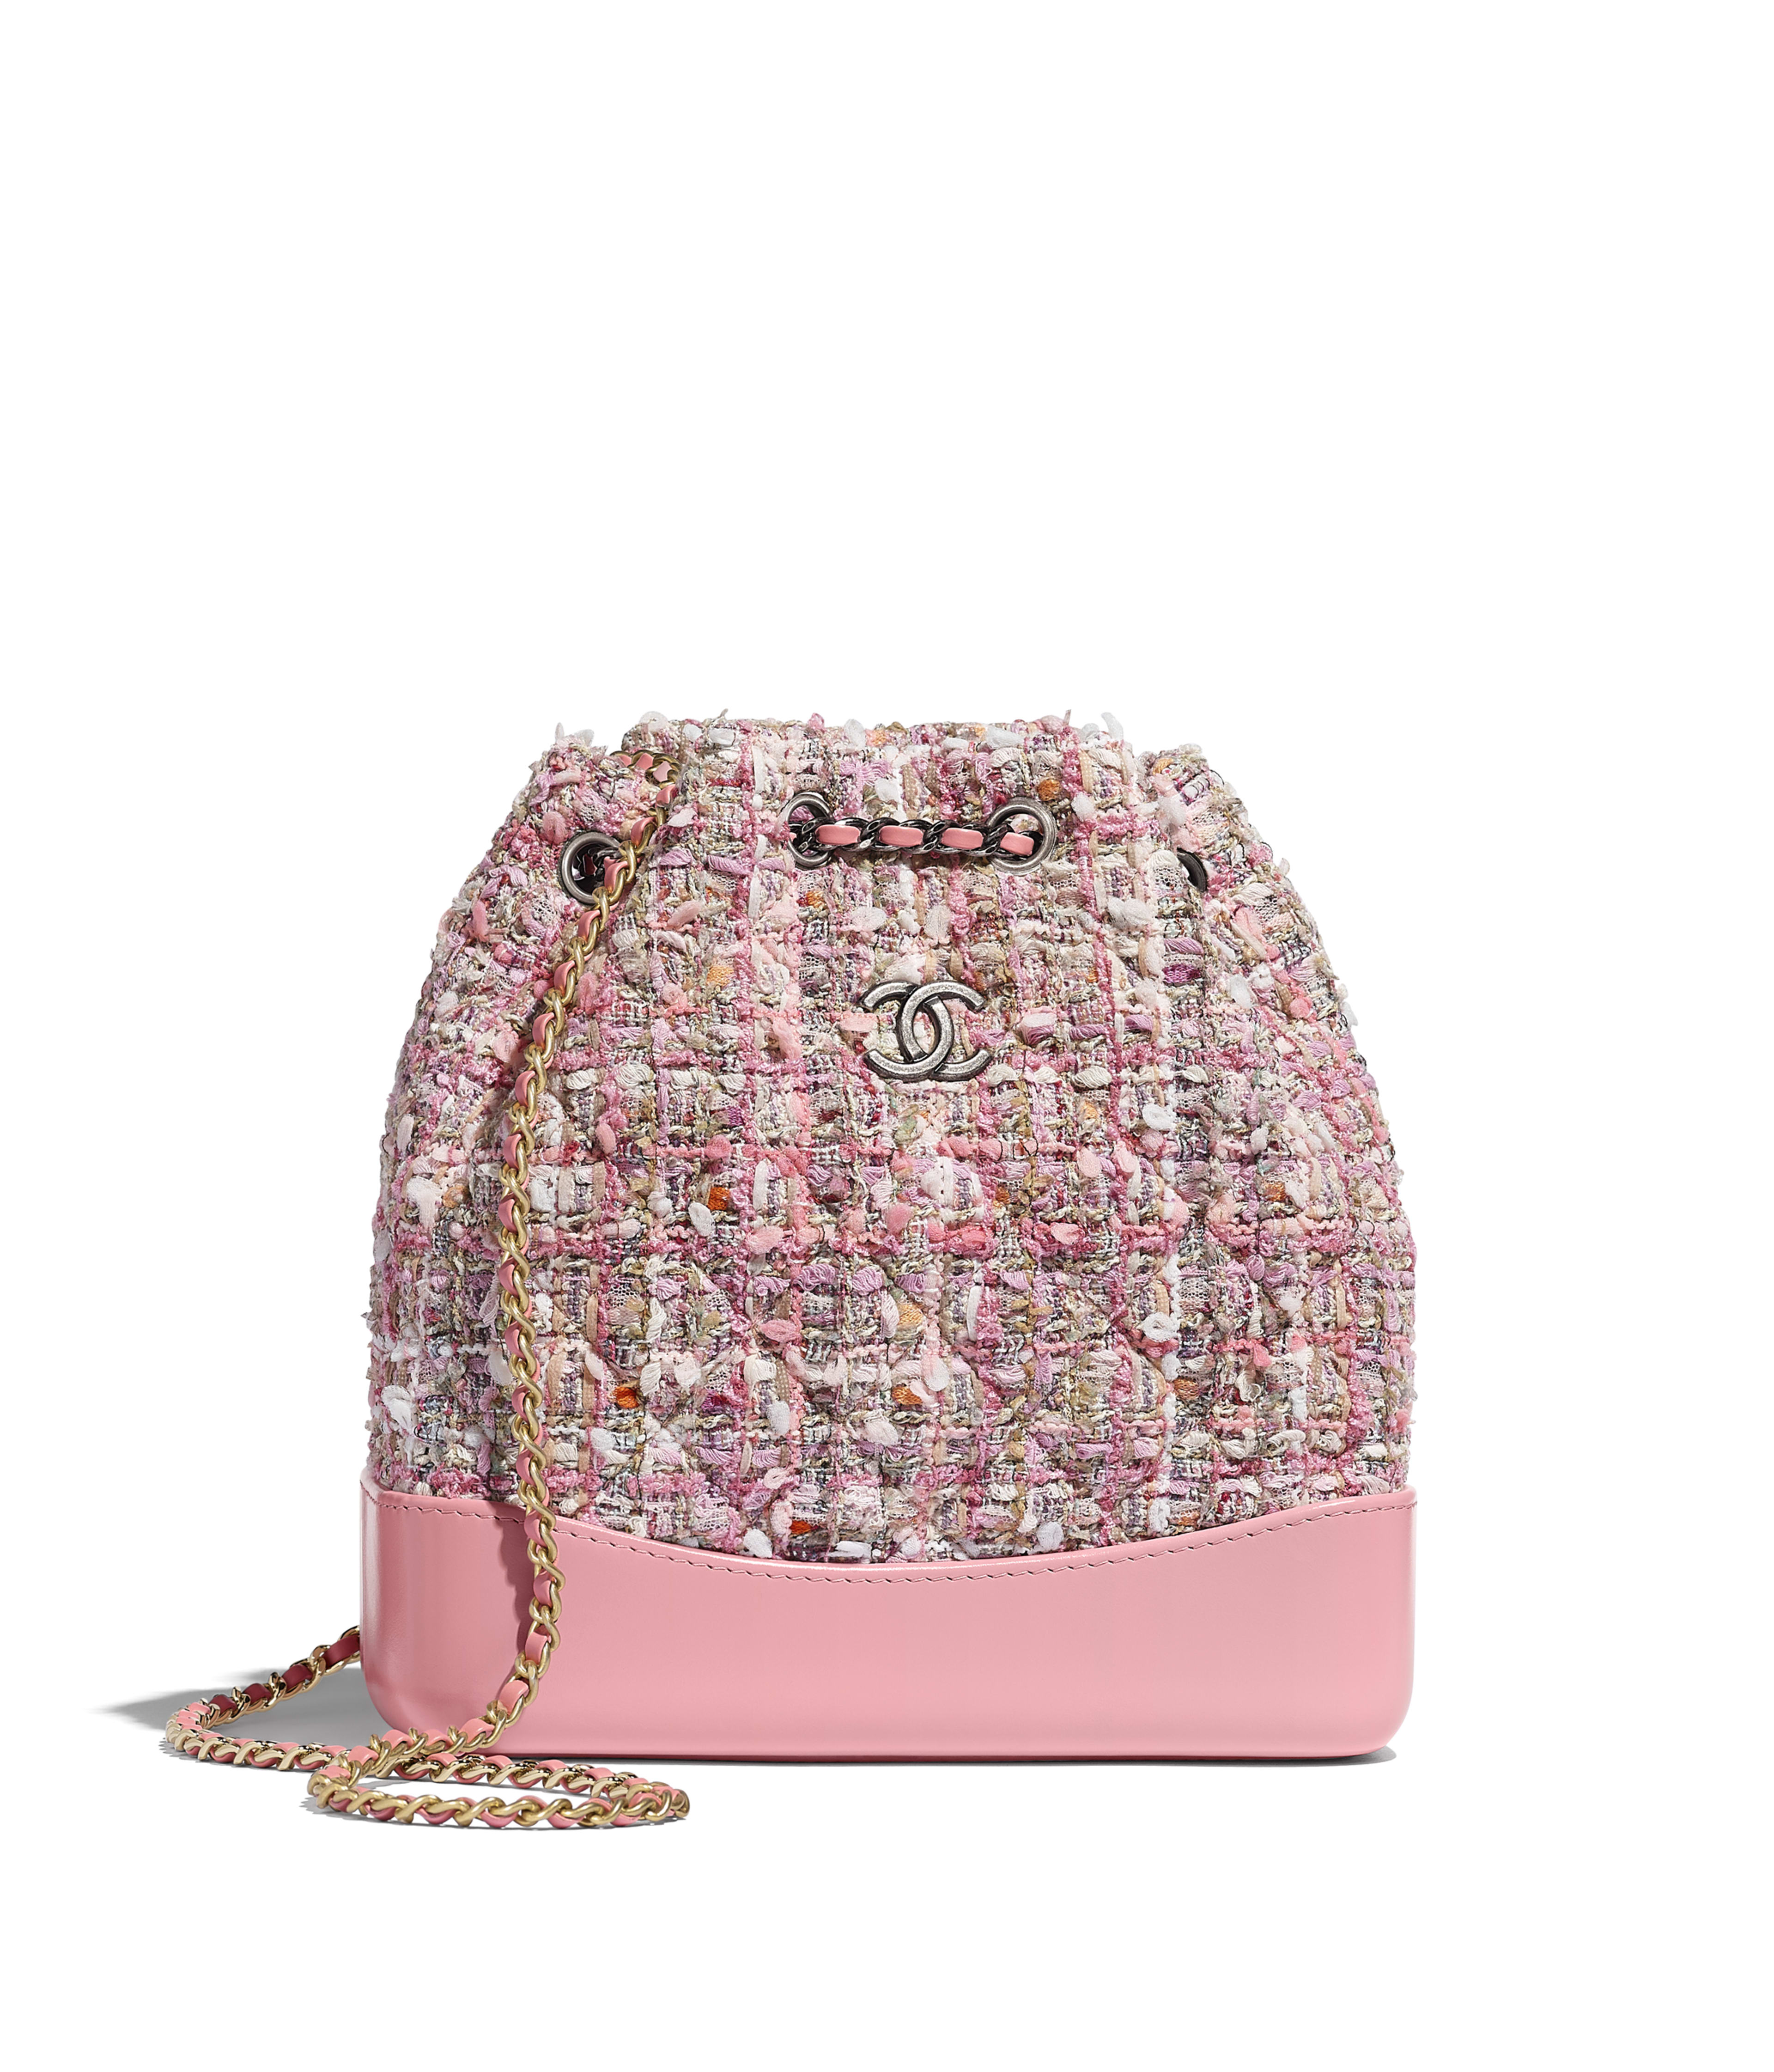 df0b62b385f5 CHANEL'S GABRIELLE Small Backpack Tweed, Shiny Calfskin & Gold-Tone & Silver-Tone  Metal, Pink, Beige, Orange & Ecru Ref. A94485B00393N4341